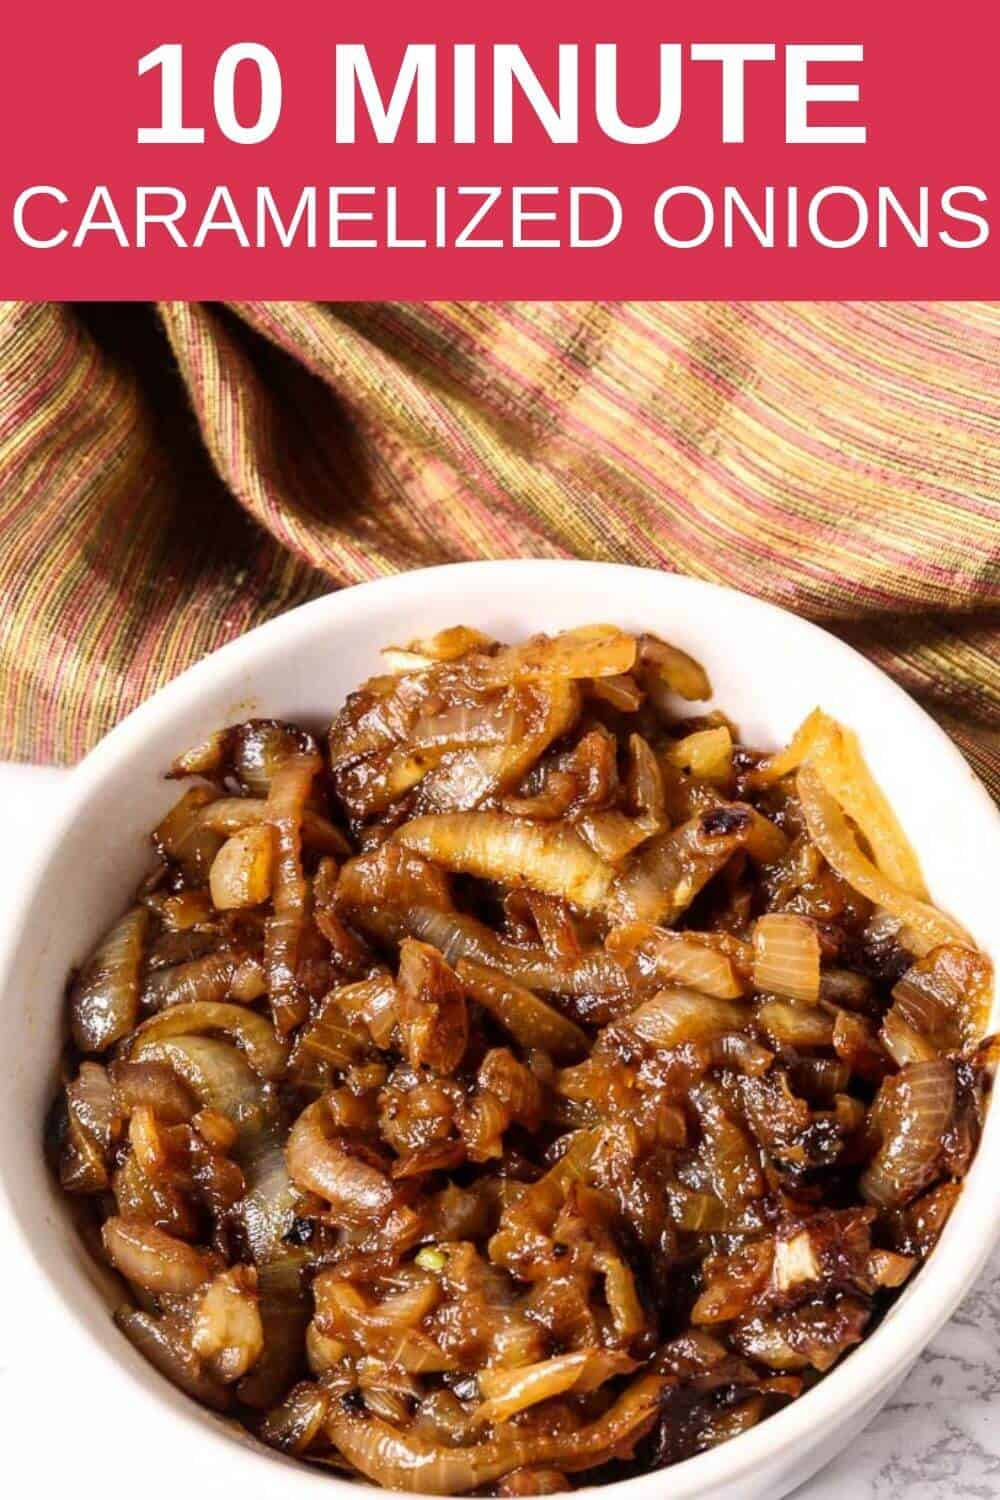 Caramelized Onions Are A Sweet Sweet Treat That Adds Another Level Of Flavor To Almost Any Di Caramelized Onions Recipe Onion Recipes Carmelized Onions Recipe